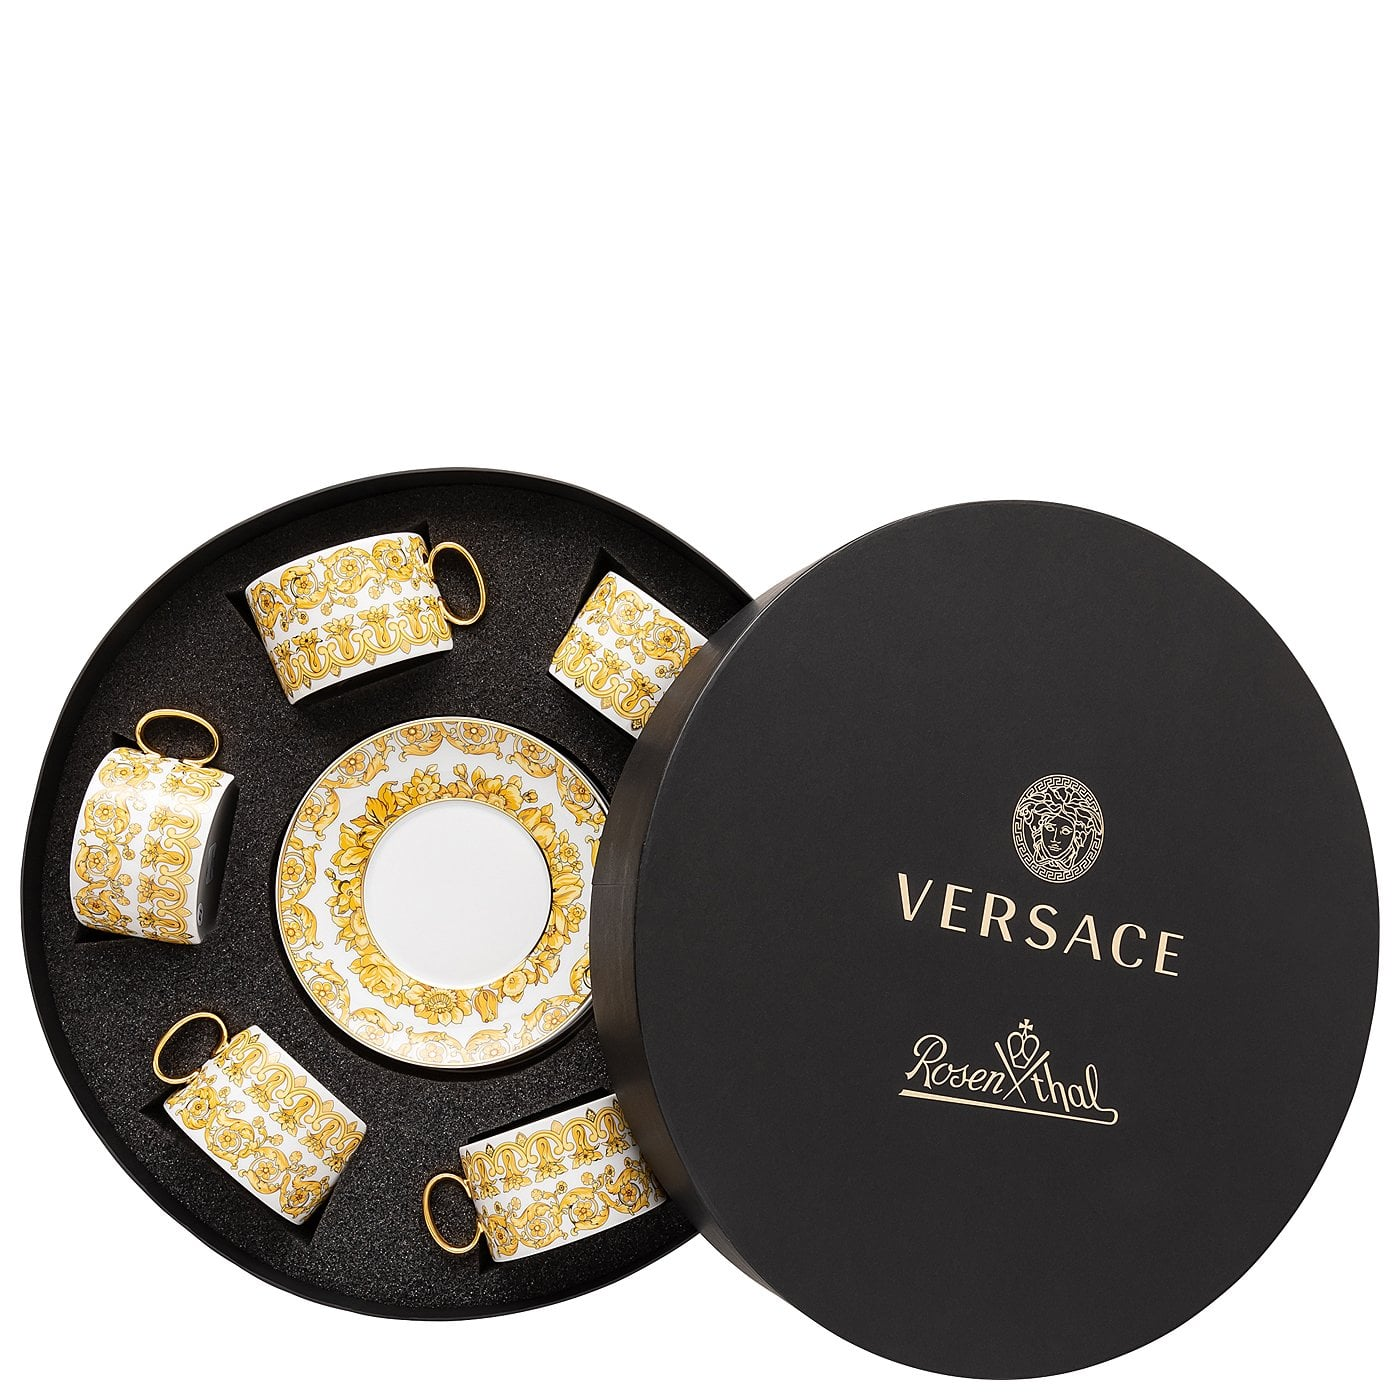 Versace by Rosenthal Medusa Rhapsody Red Bread and Butter Plate 6.5